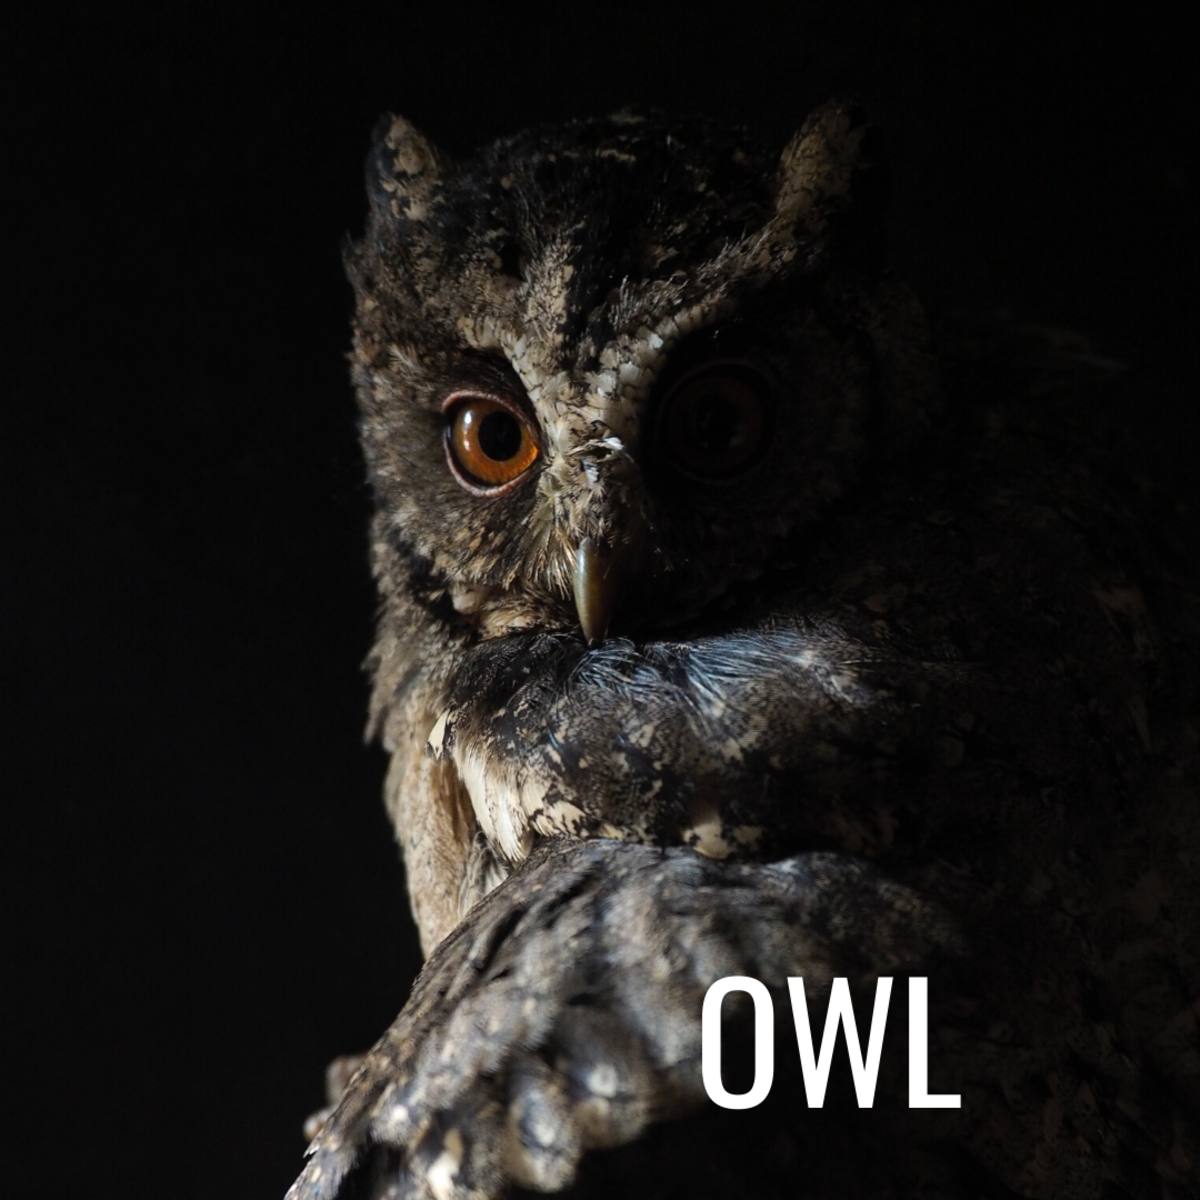 In many cultures, owls are considered harbingers of death.